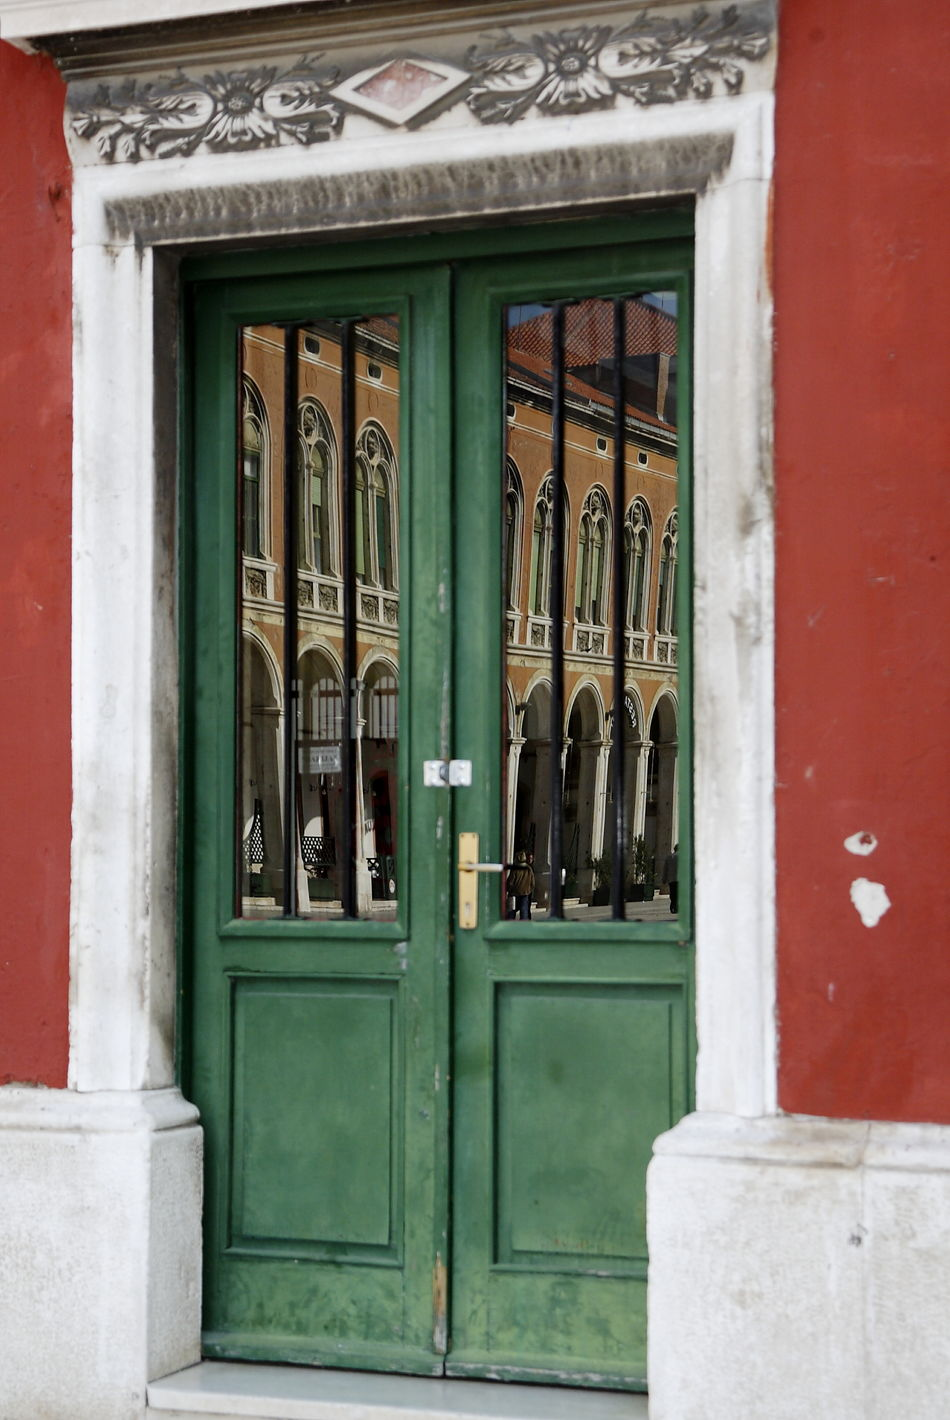 Architecture Building Exterior Built Structure Closed Doors Color Rust Day Door Doors Green Green Color Green Doors No People Outdoors Reflection Reflection In A Window Republic Square Rust Stone Frame Stone Framing